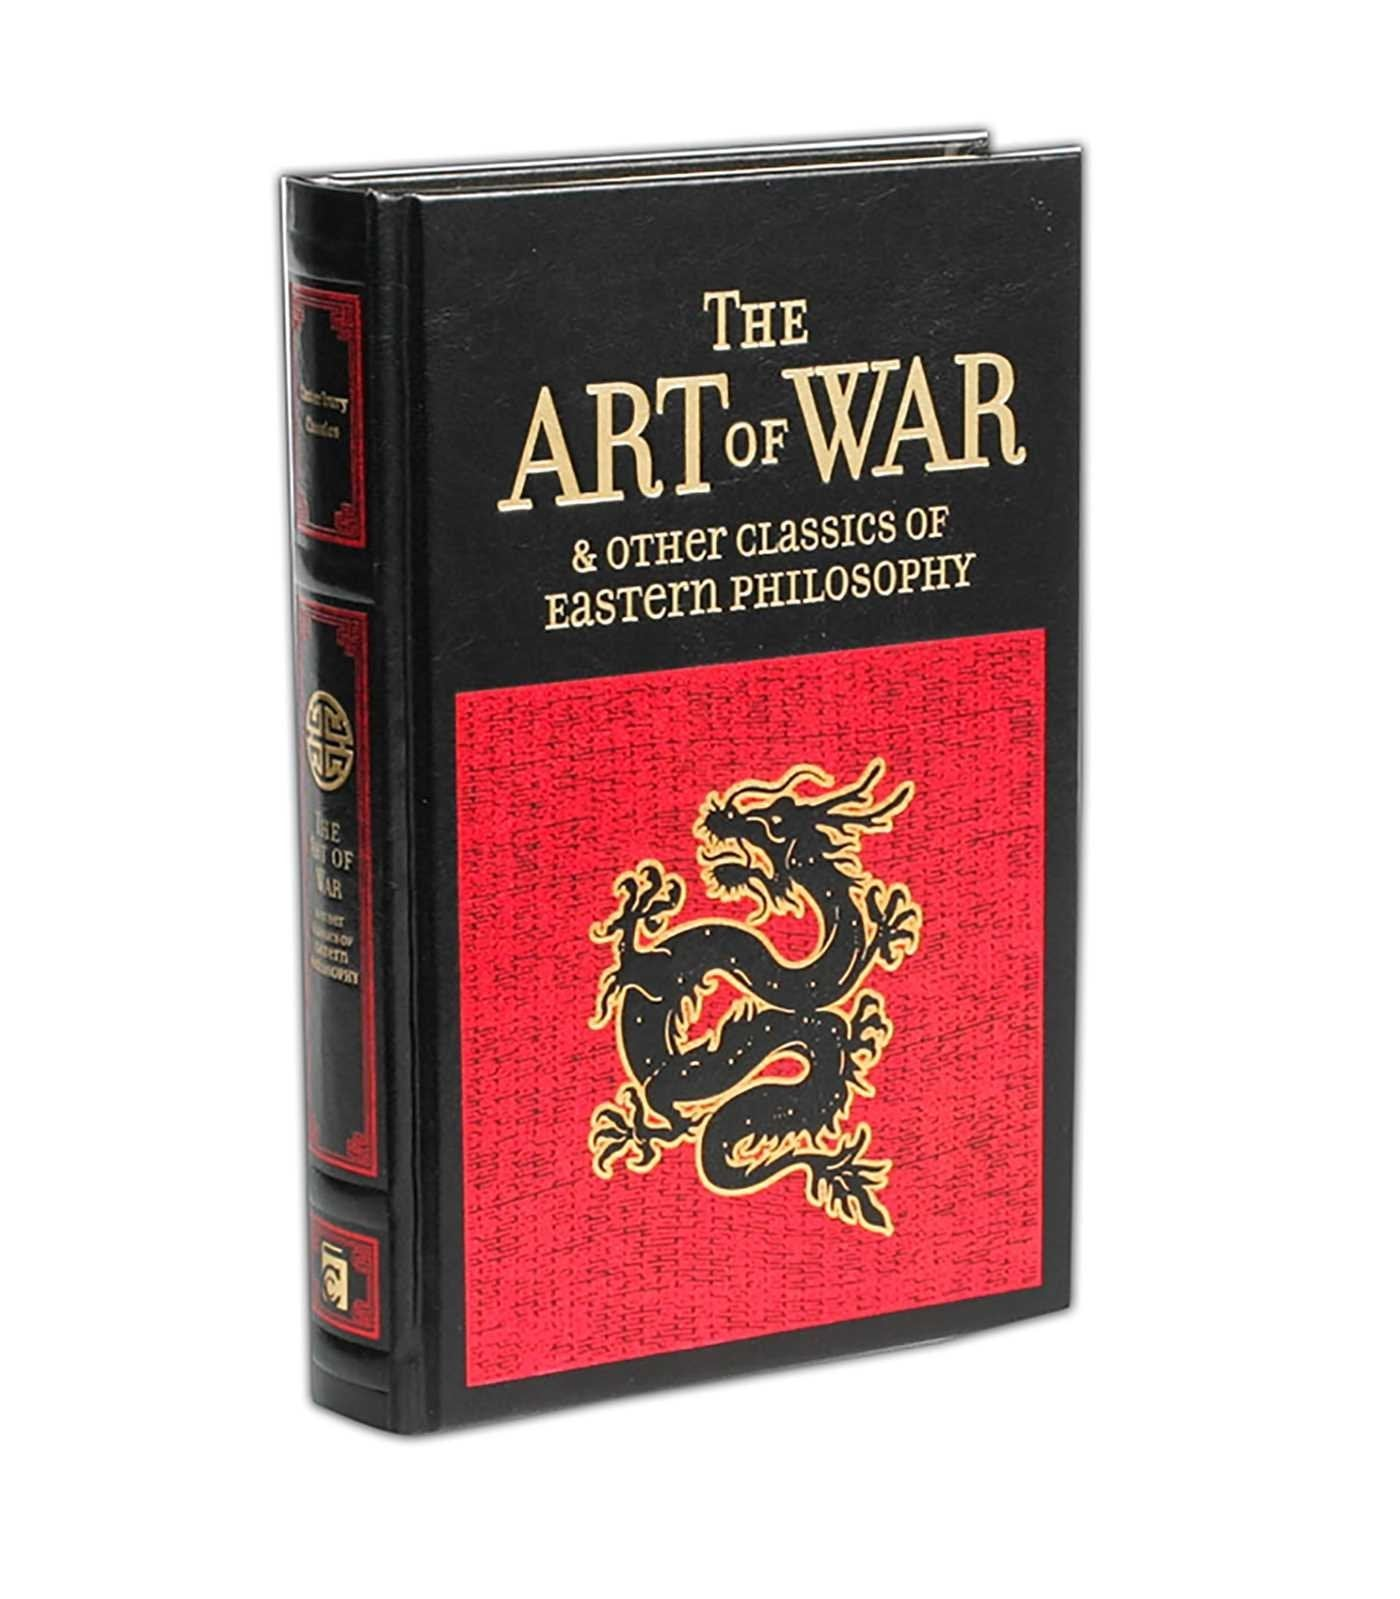 The Art of War & Other Classics of Eastern Philosophy - D'Autores